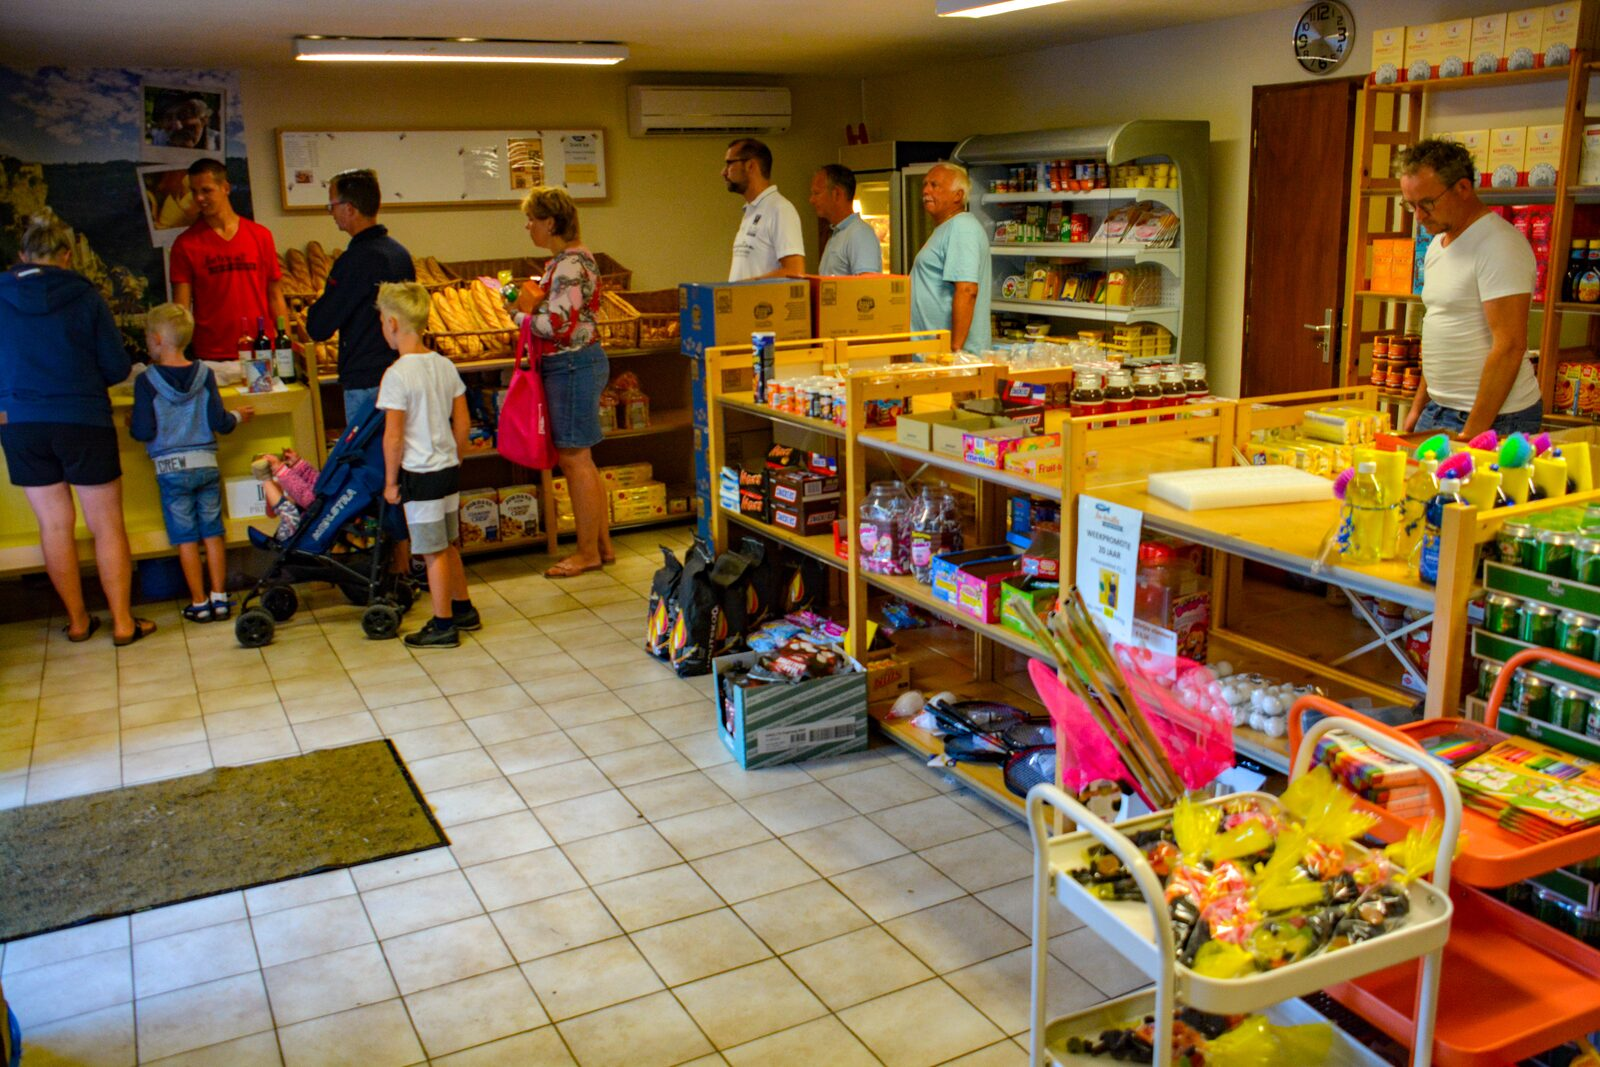 Park shop with customers at the checkout